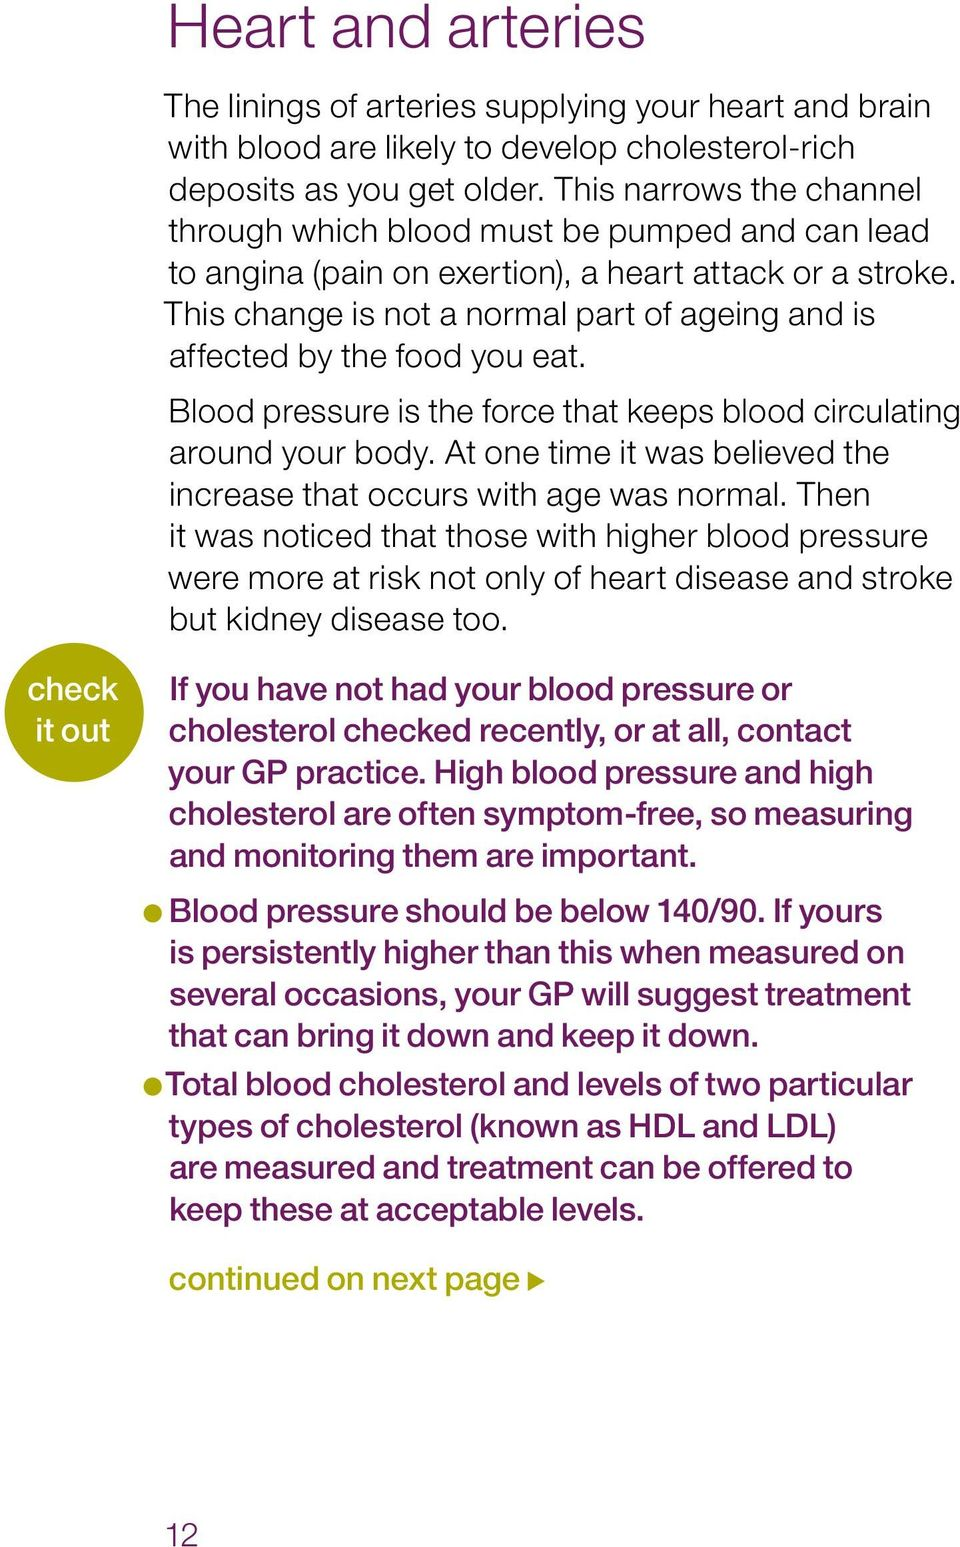 This change is not a normal part of ageing and is affected by the food you eat. Blood pressure is the force that keeps blood circulating around your body.